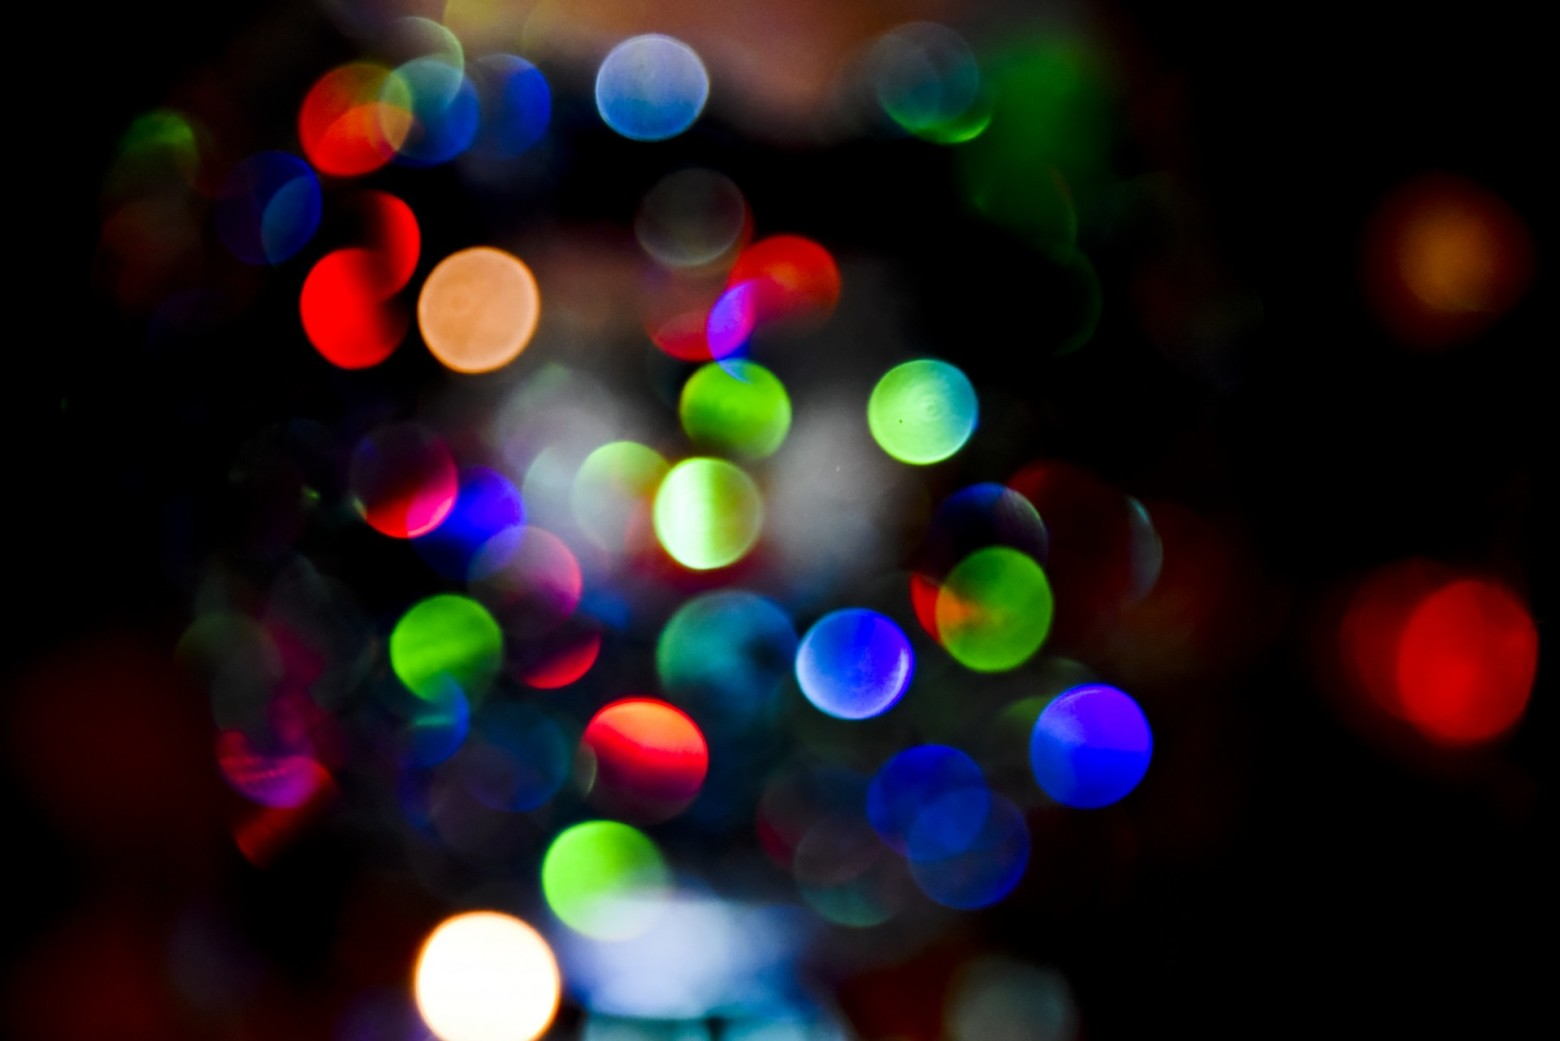 abstrait bokeh lumire colore images photos gratuites - Lumire Colore